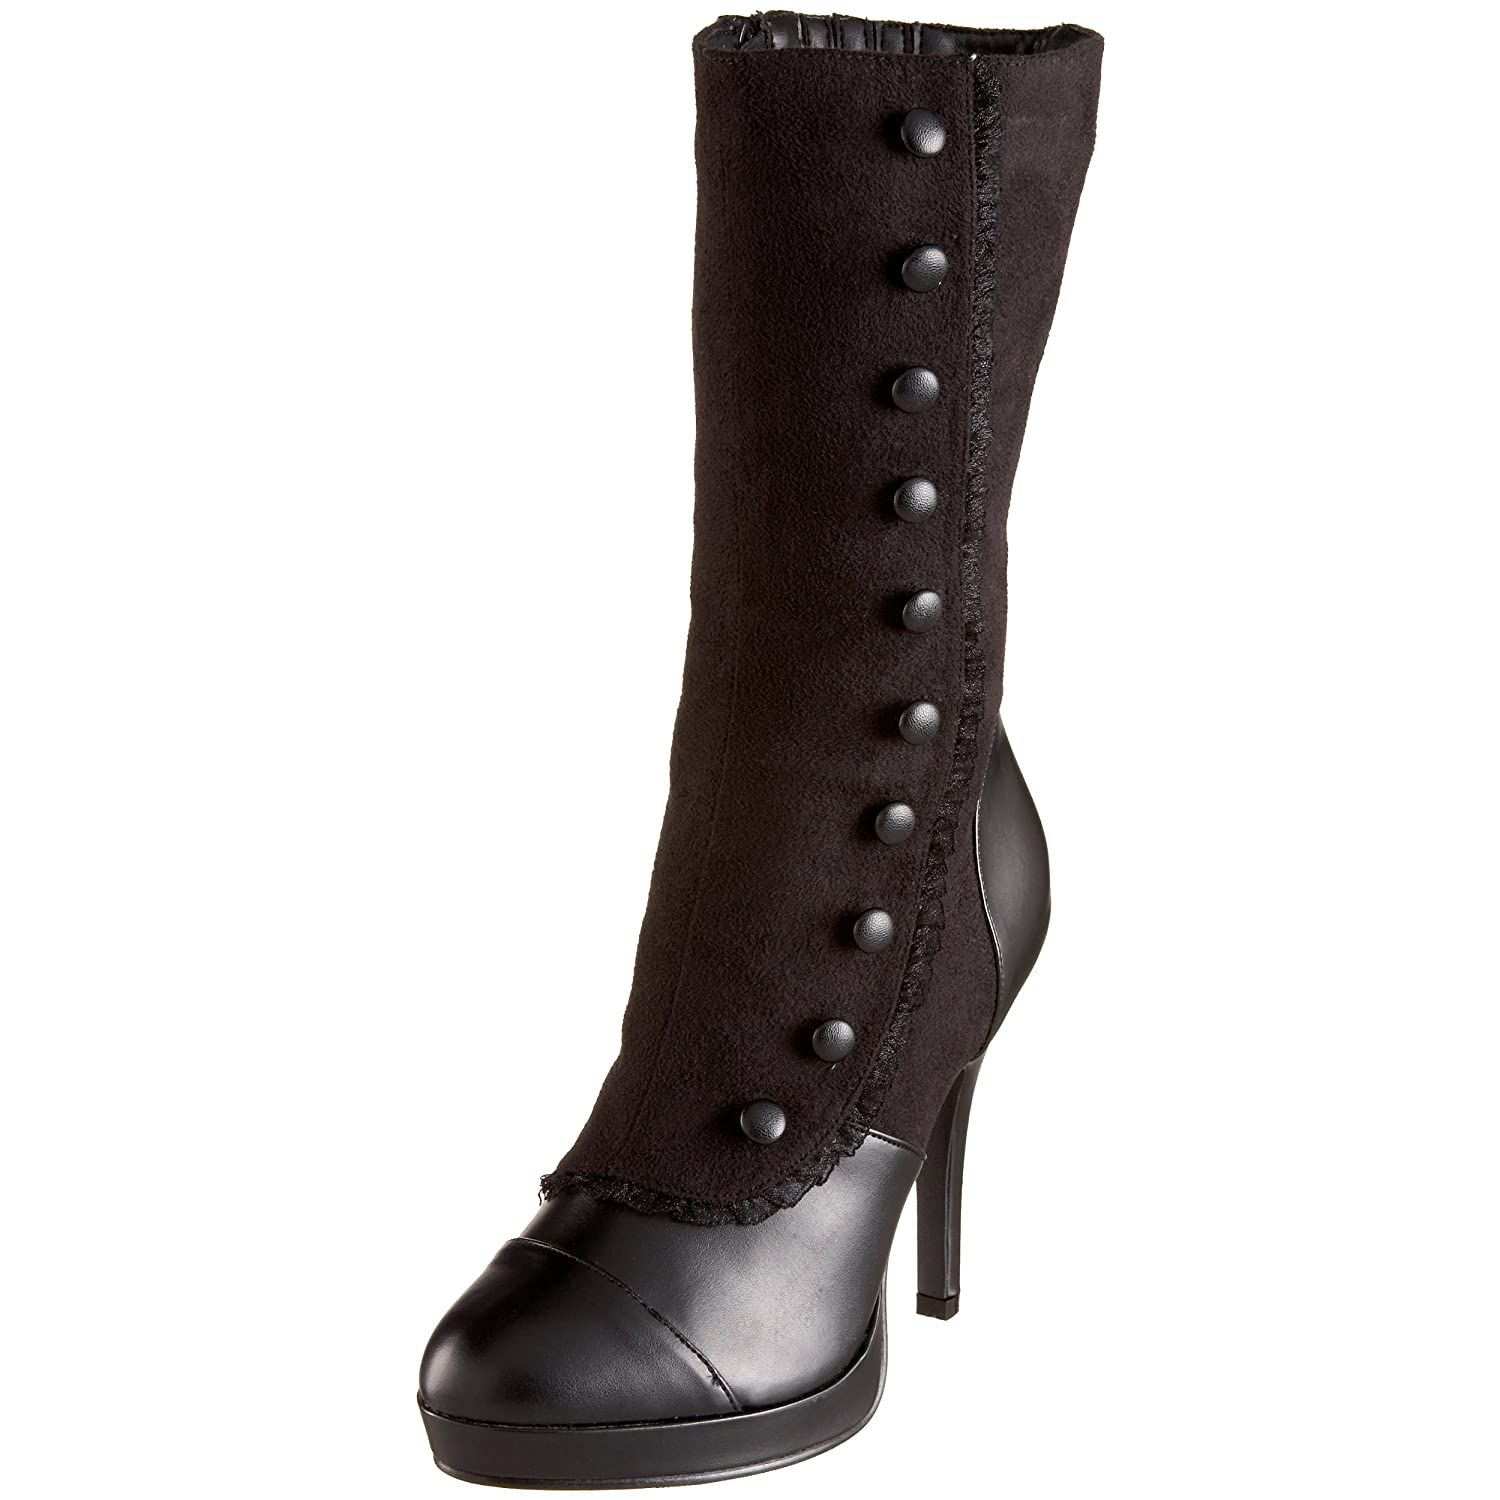 Vintage Boots, Granny Boots, Retro Boots  Womens Splendor-130 Mid-Calf Boot $45.96 AT vintagedancer.com